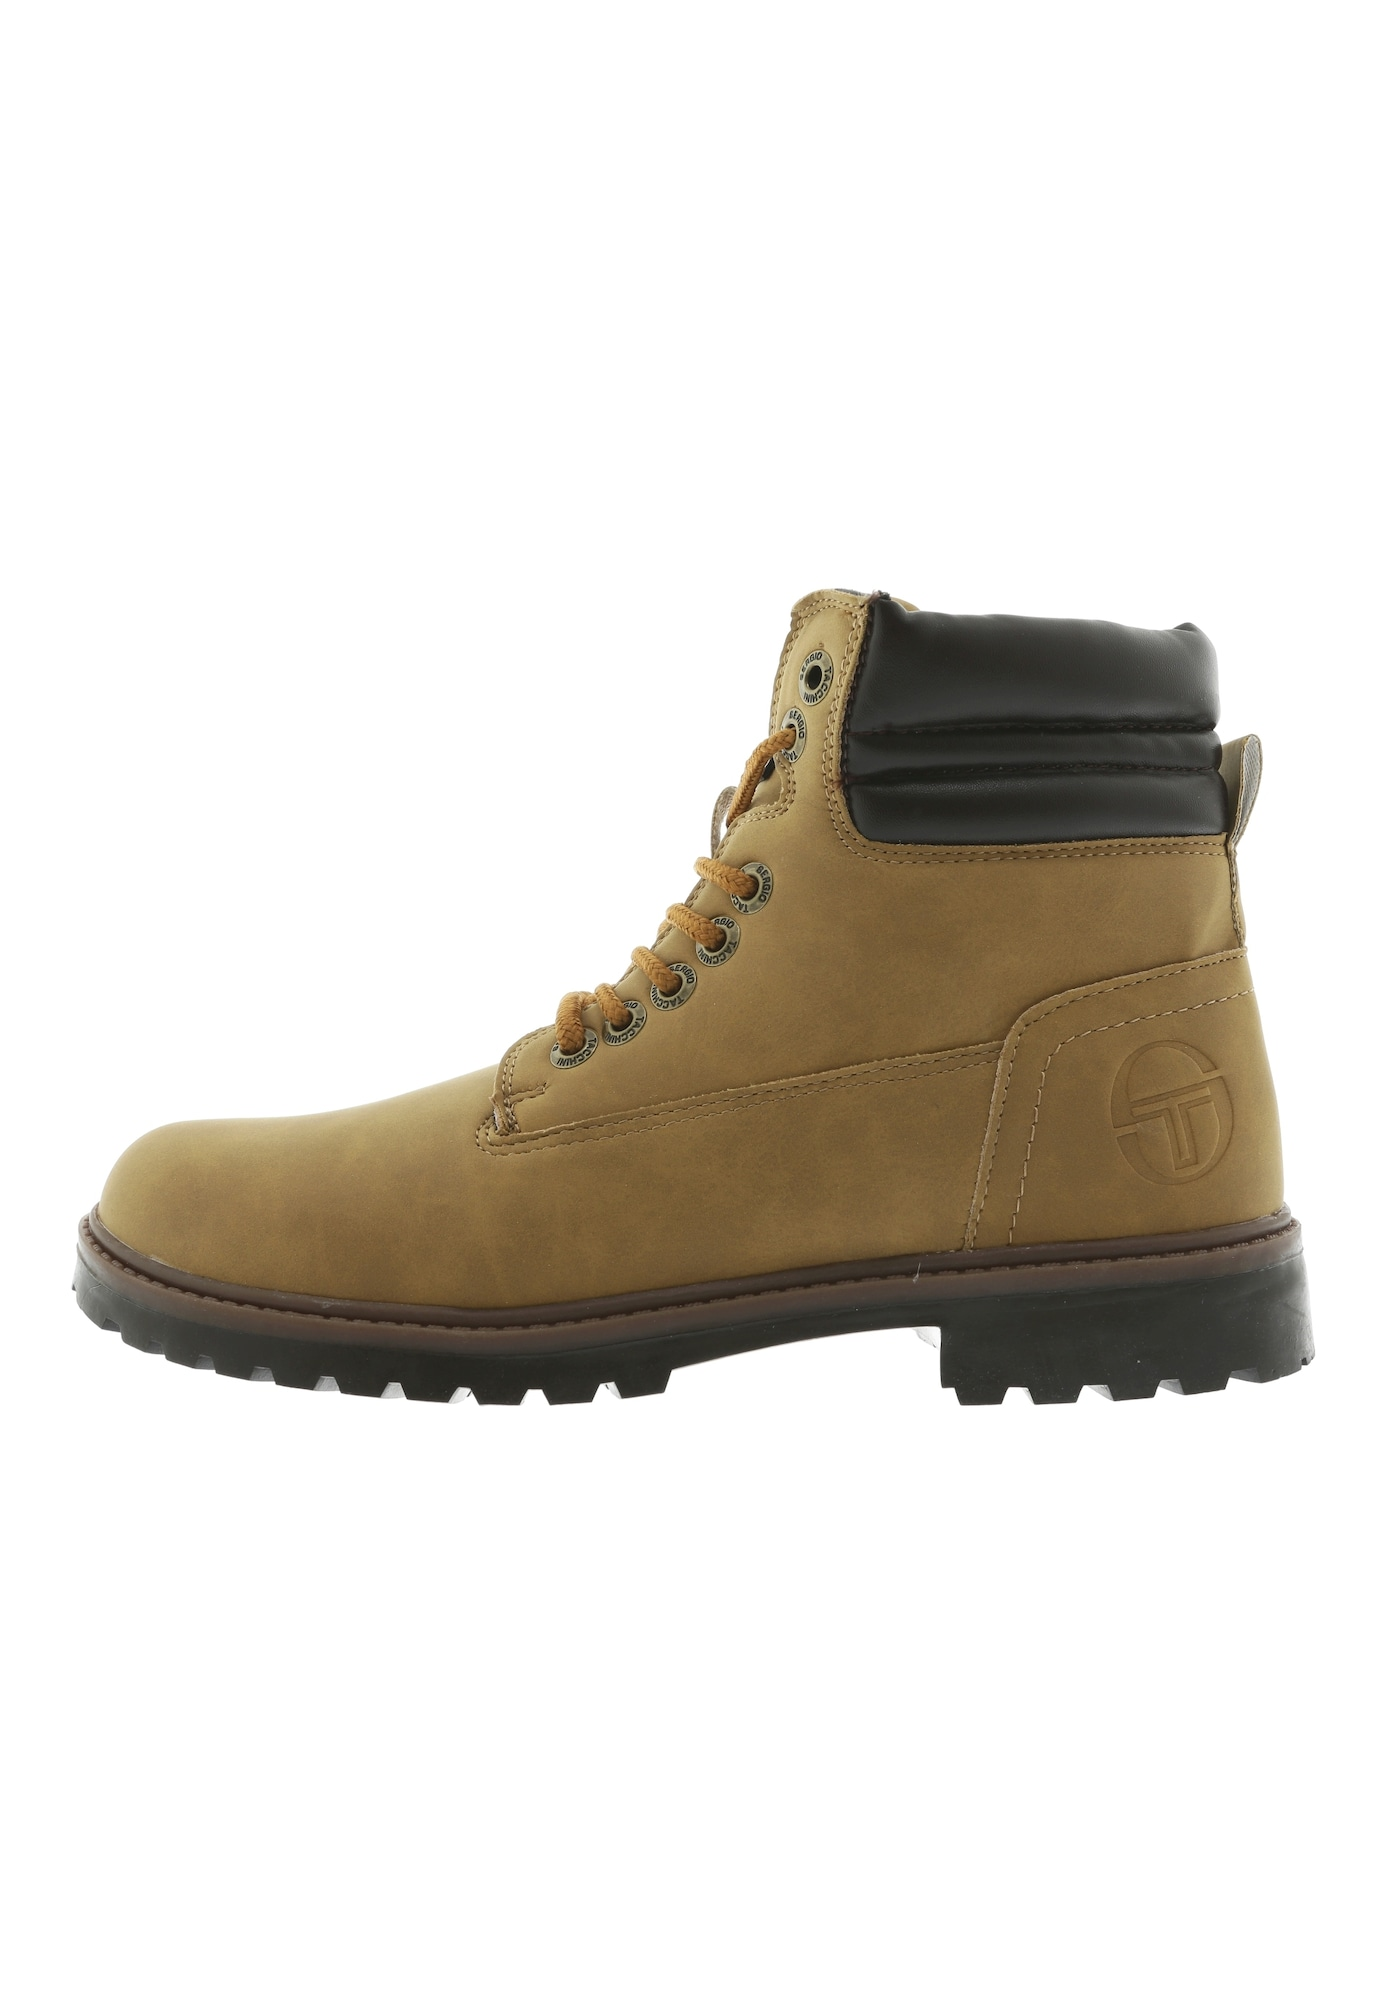 Boots 'ELBRUS NBX' | Schuhe > Boots > Sonstige Boots | Sergio Tacchini